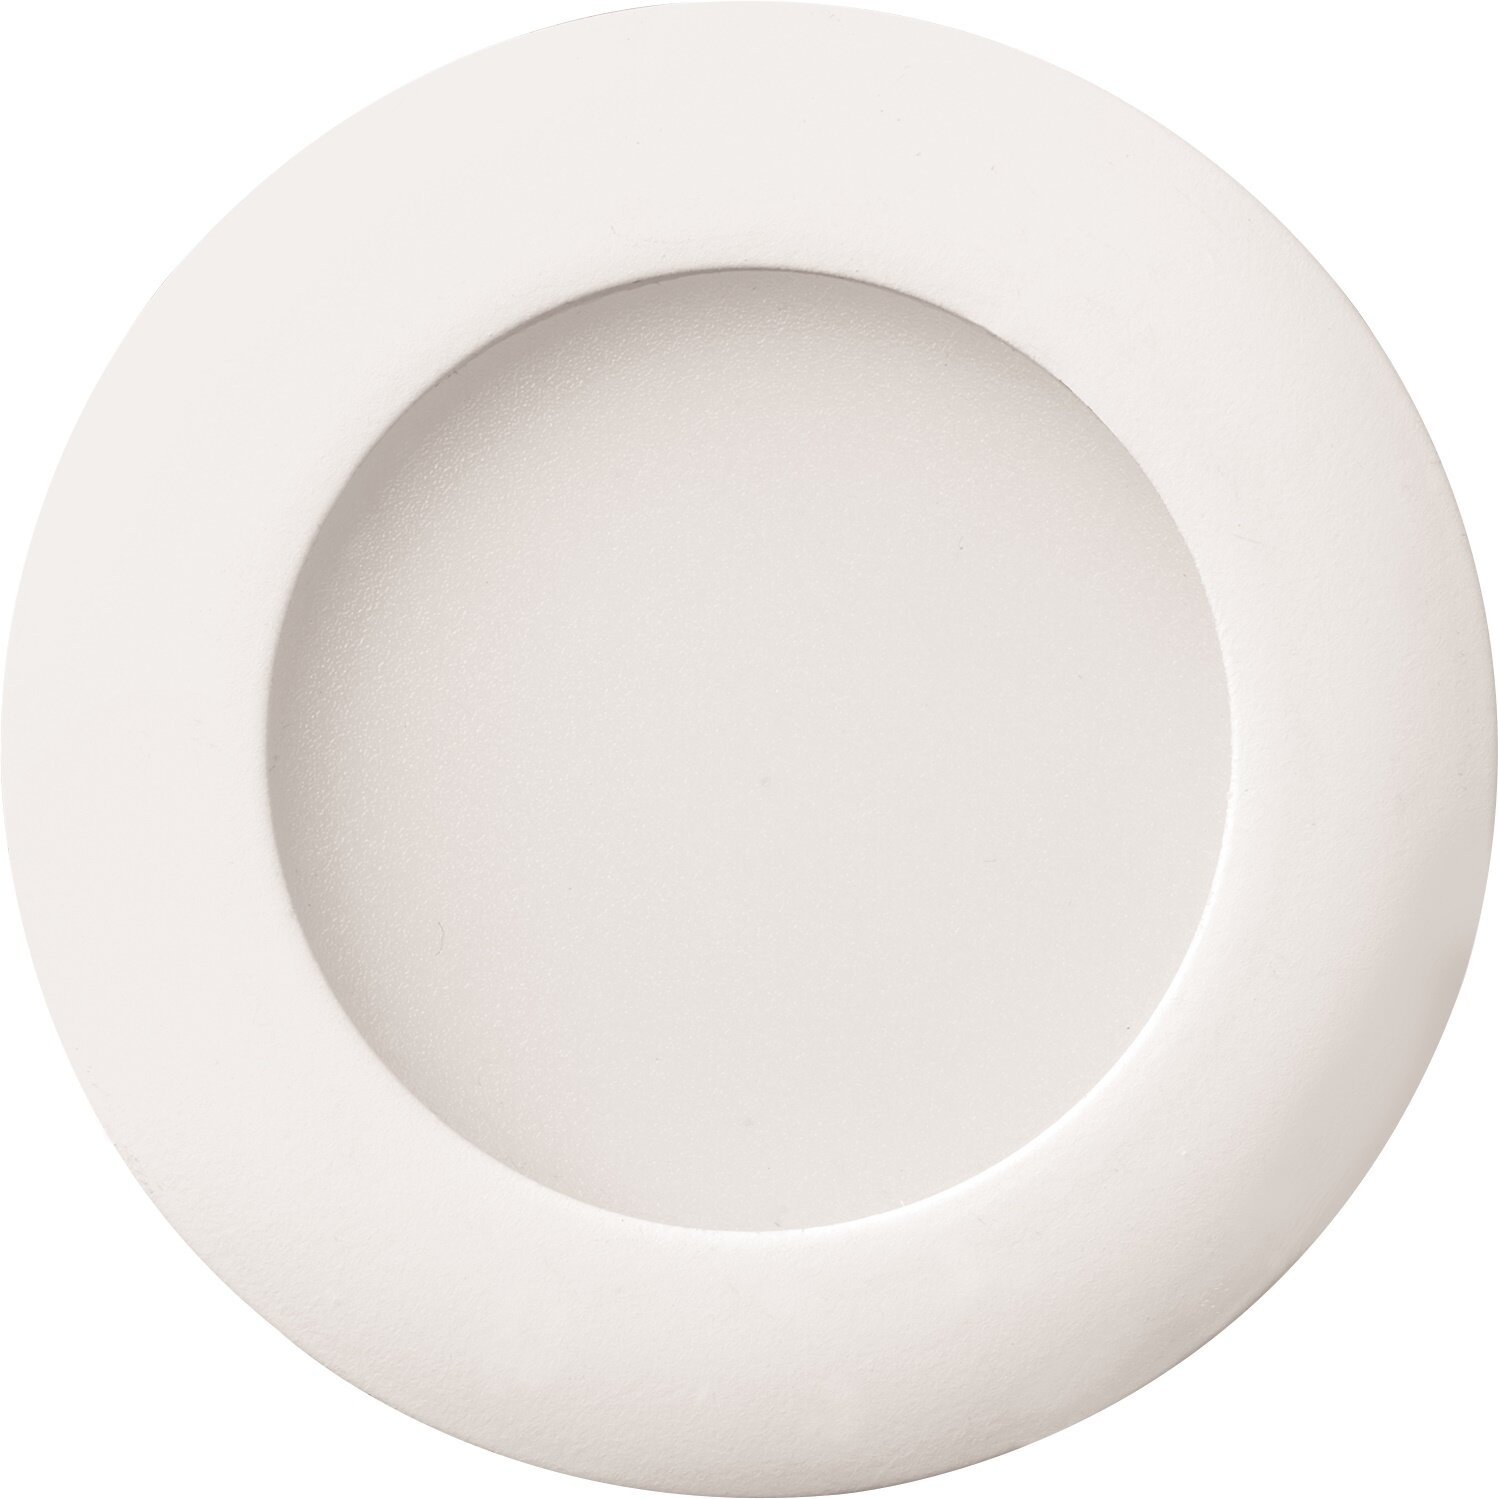 Lithonia Lighting 8w Ultra Thin 3 Dimmable Recessed Ceiling Kit Wayfair